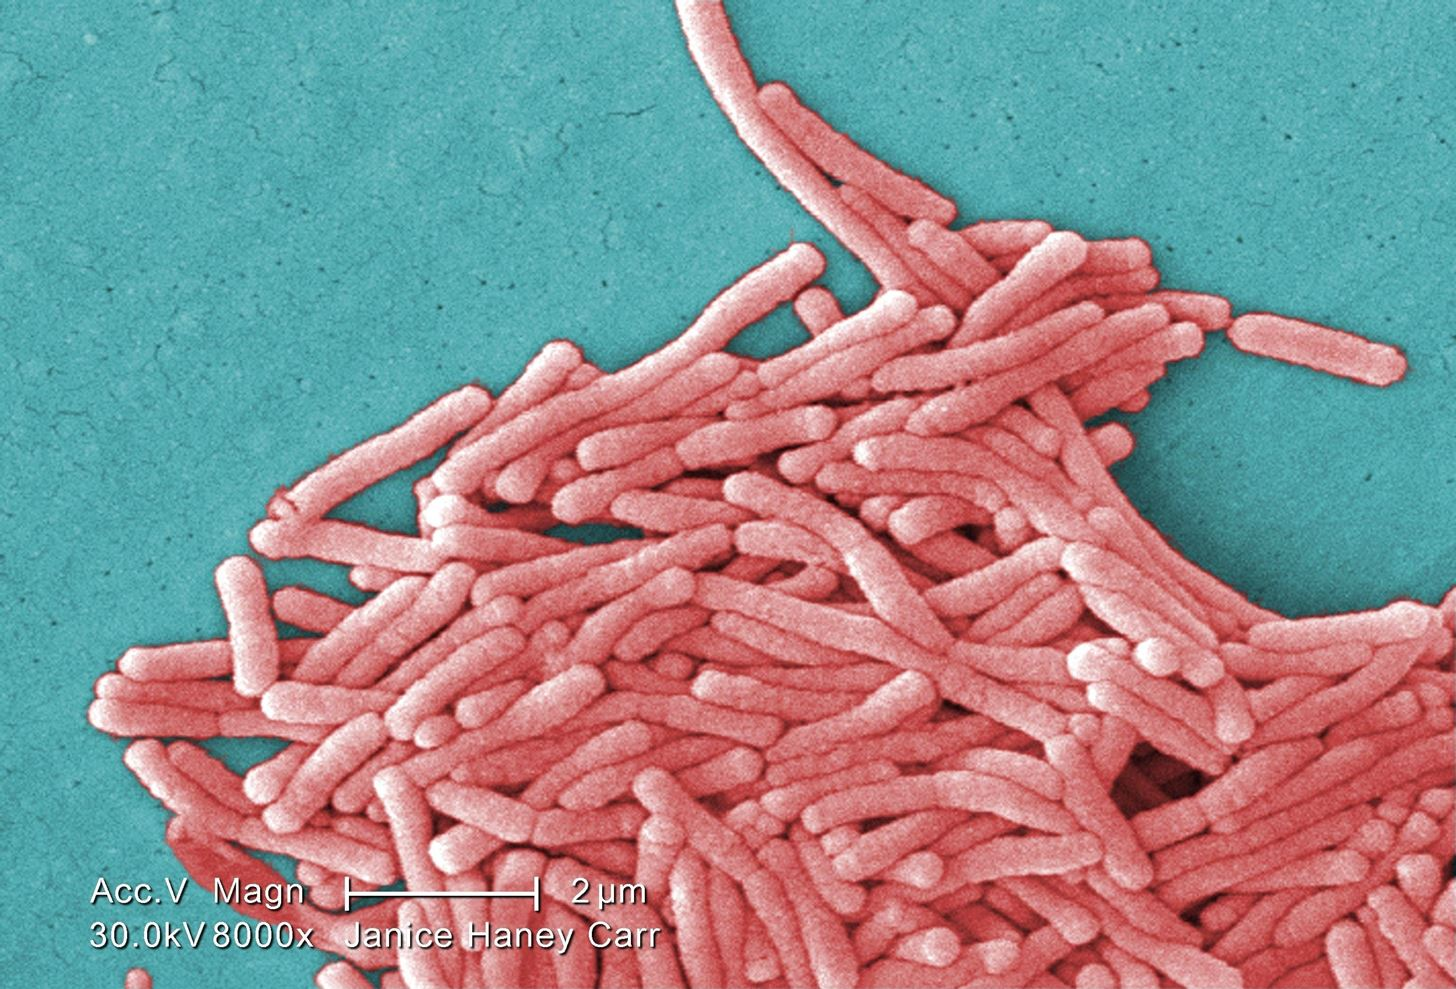 New Study Says Stopping Slimy Biofilms Could Save Thousands a Year from Legionnaires' Disease